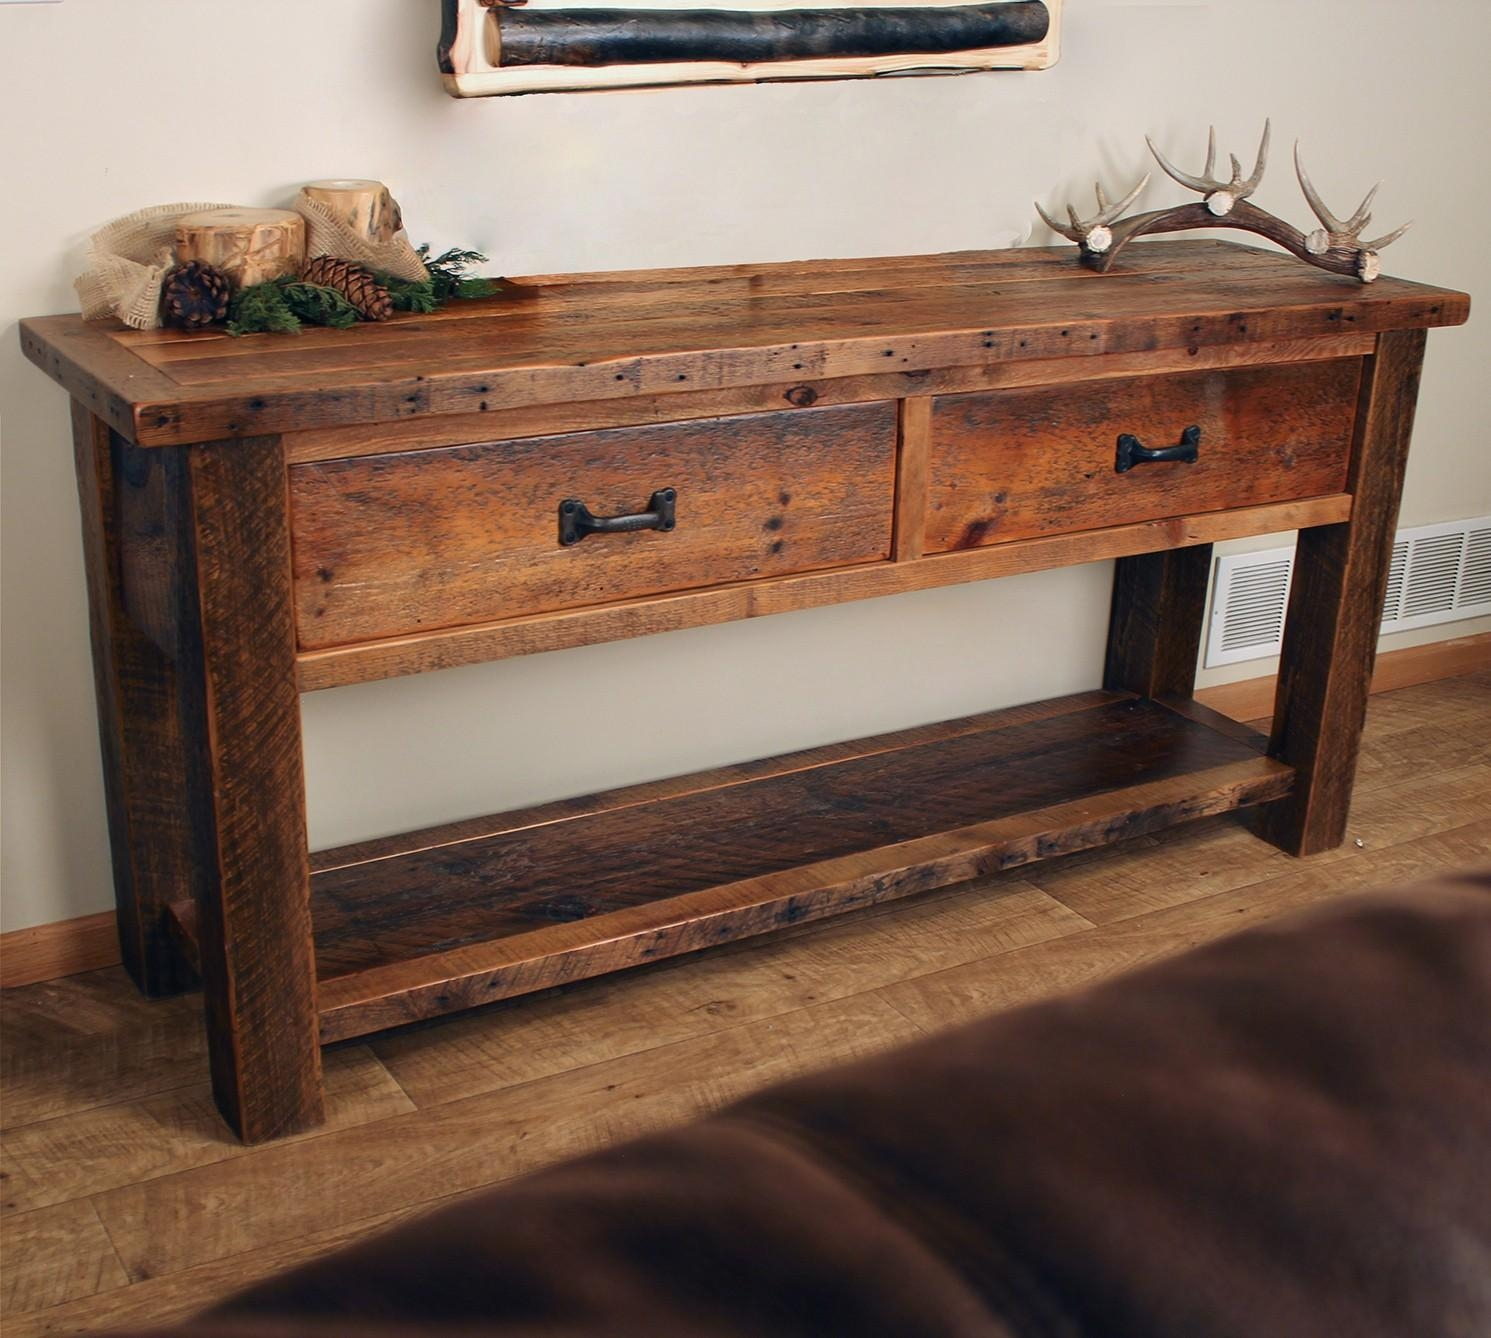 Rustic Console Tables, Entry Tables, And Sofa Tables With Regard To Sofa Table Drawers (View 4 of 20)